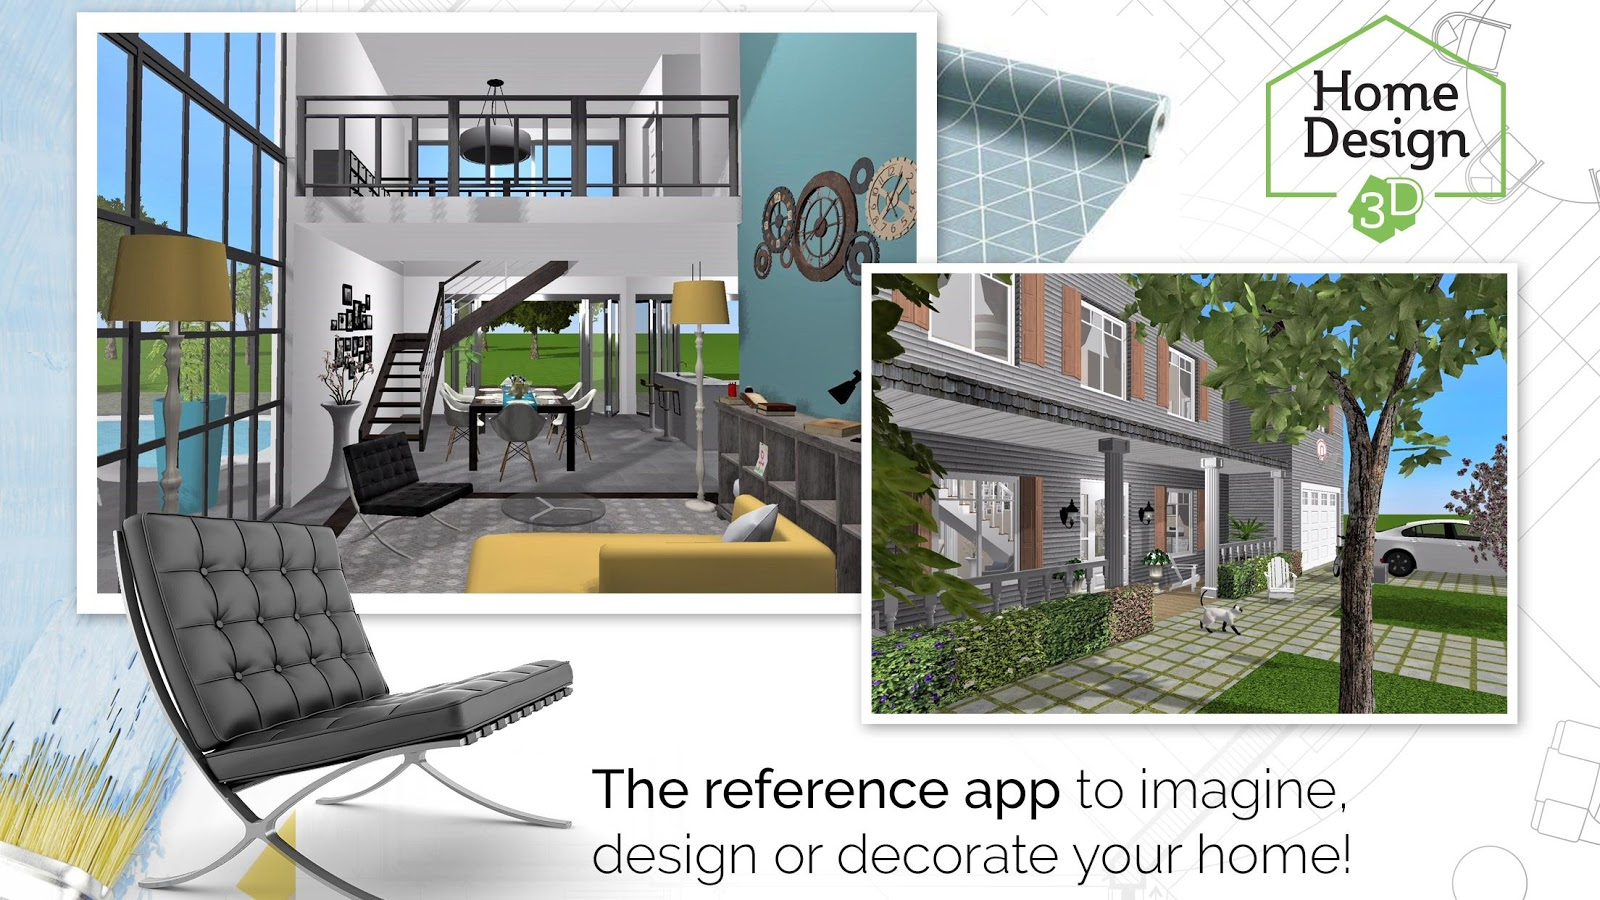 Home Design 3D - FREEMIUM 4 3 4 APK + OBB (Data File) Download